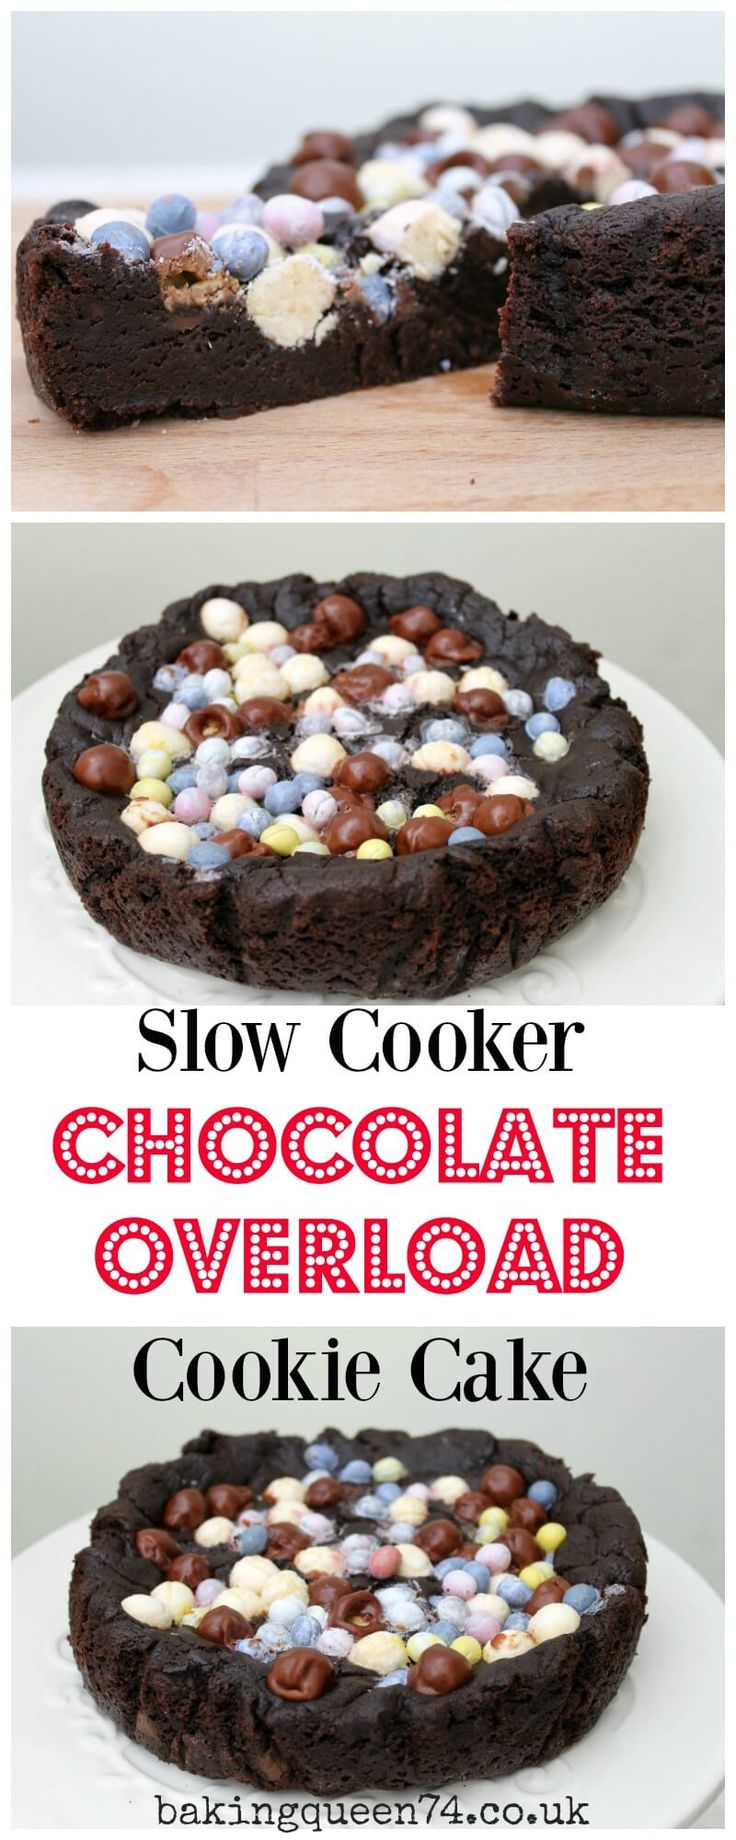 347 best Slow cooker/Crockpot Cakes and Desserts images on ...